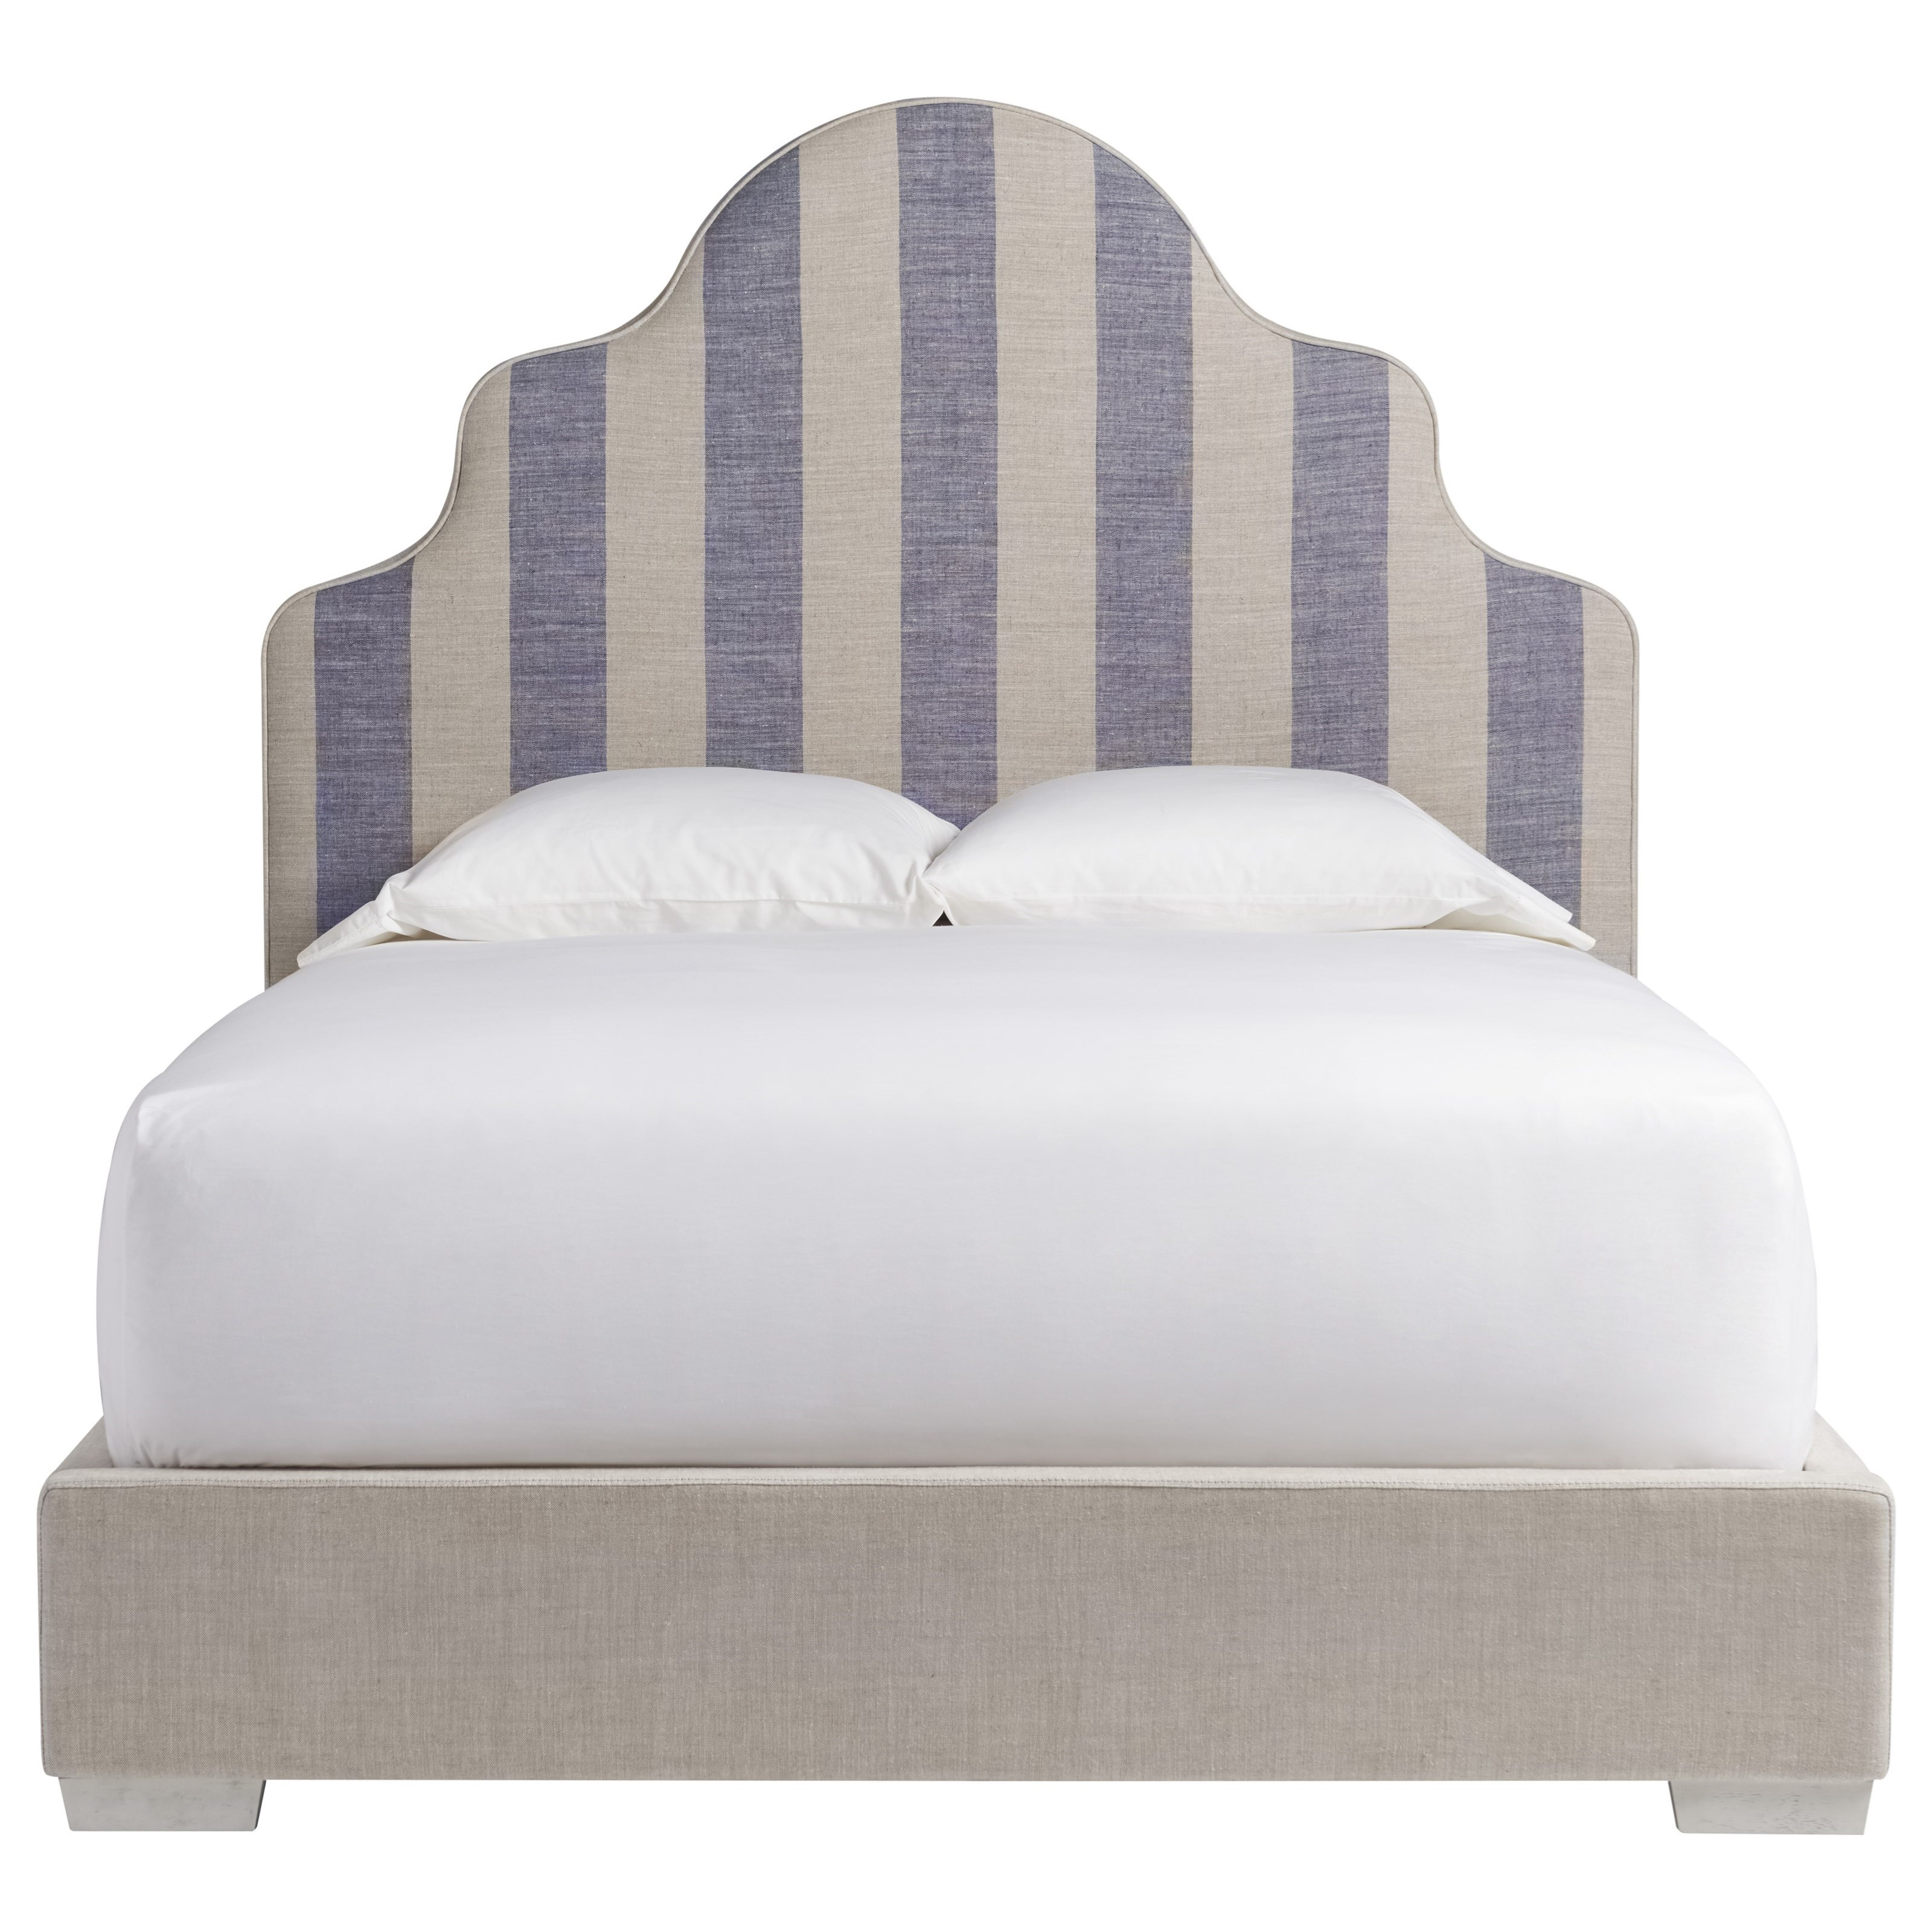 Coastal Living Home - Escape King Sagamore Hill Panel Bed by Universal at Baer's Furniture